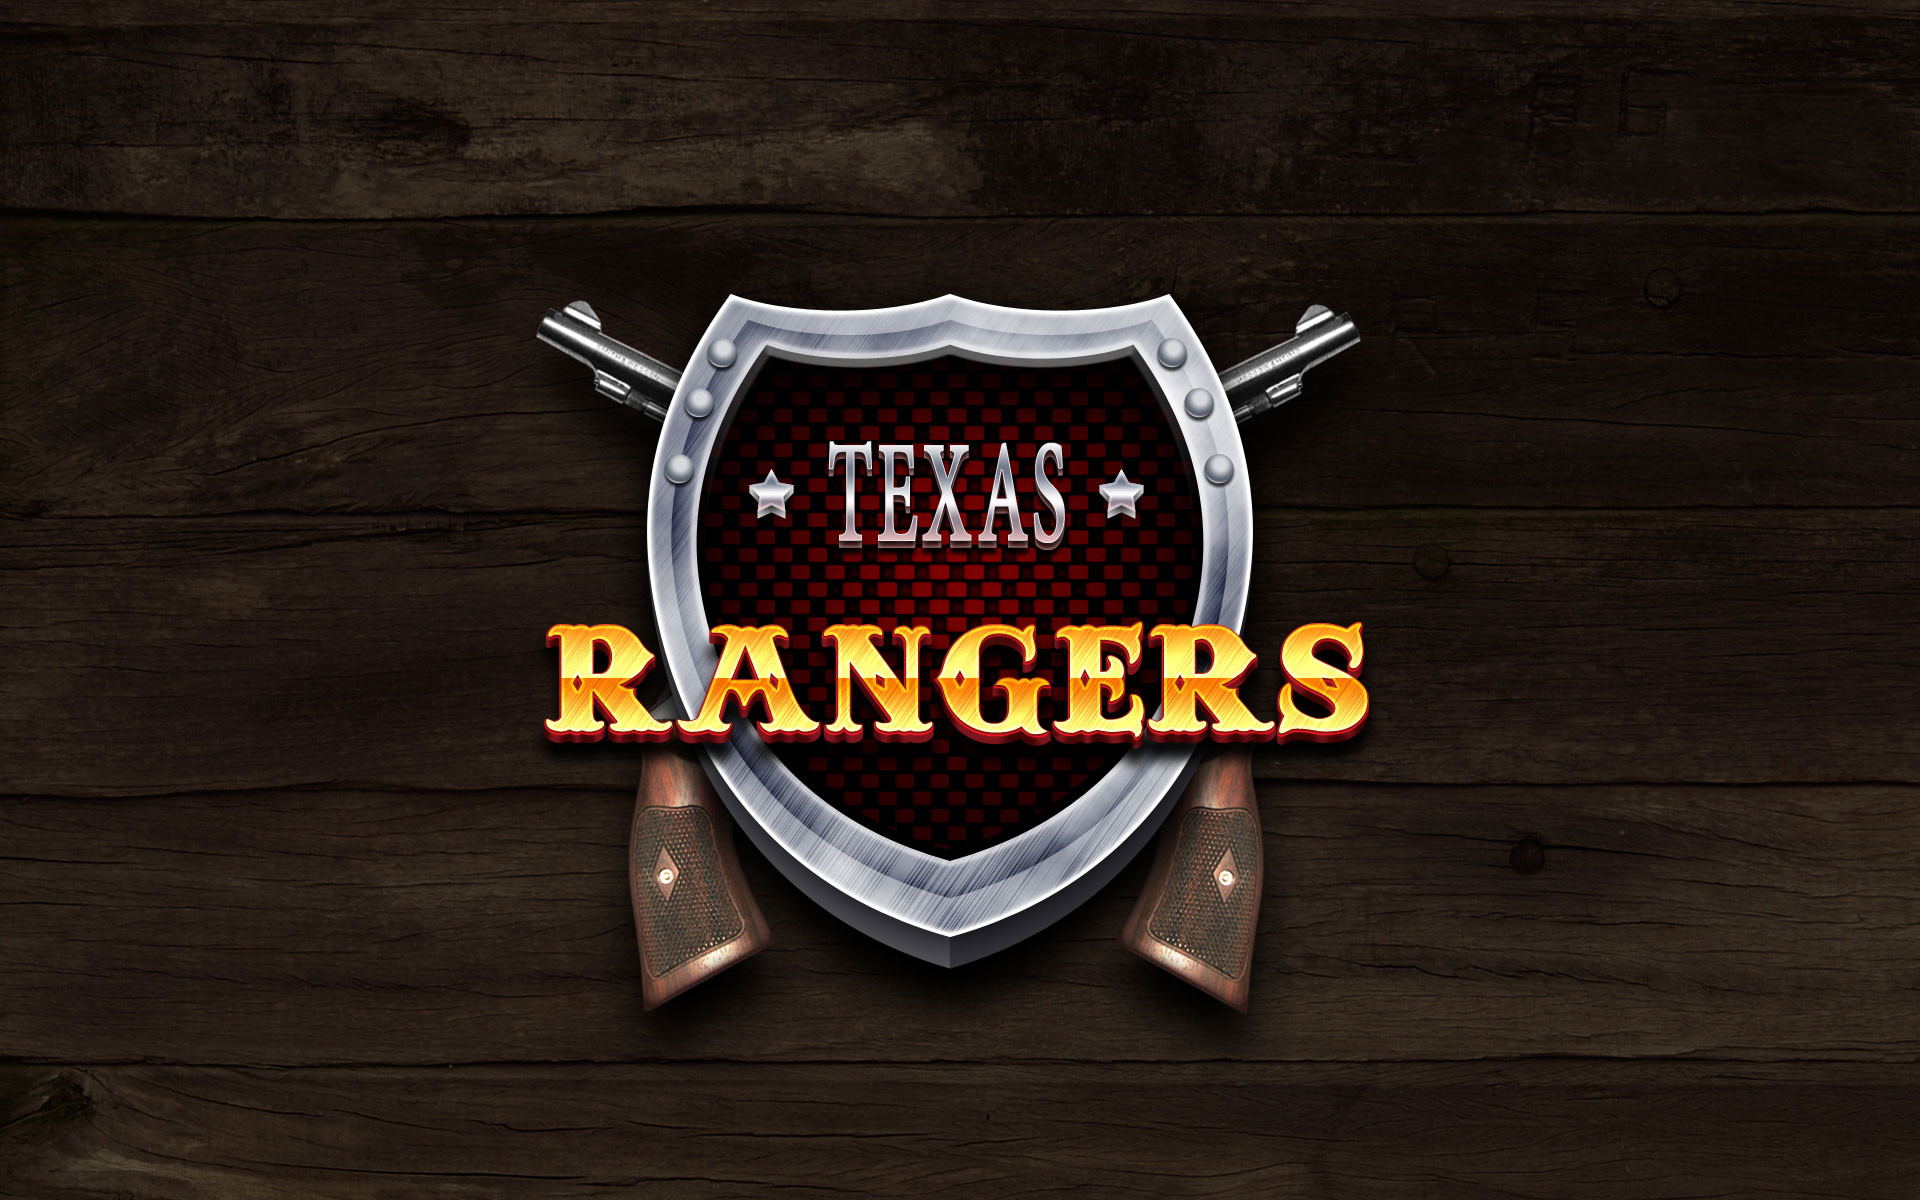 Texas Rangers wallpapers | Texas Rangers background – Page 6